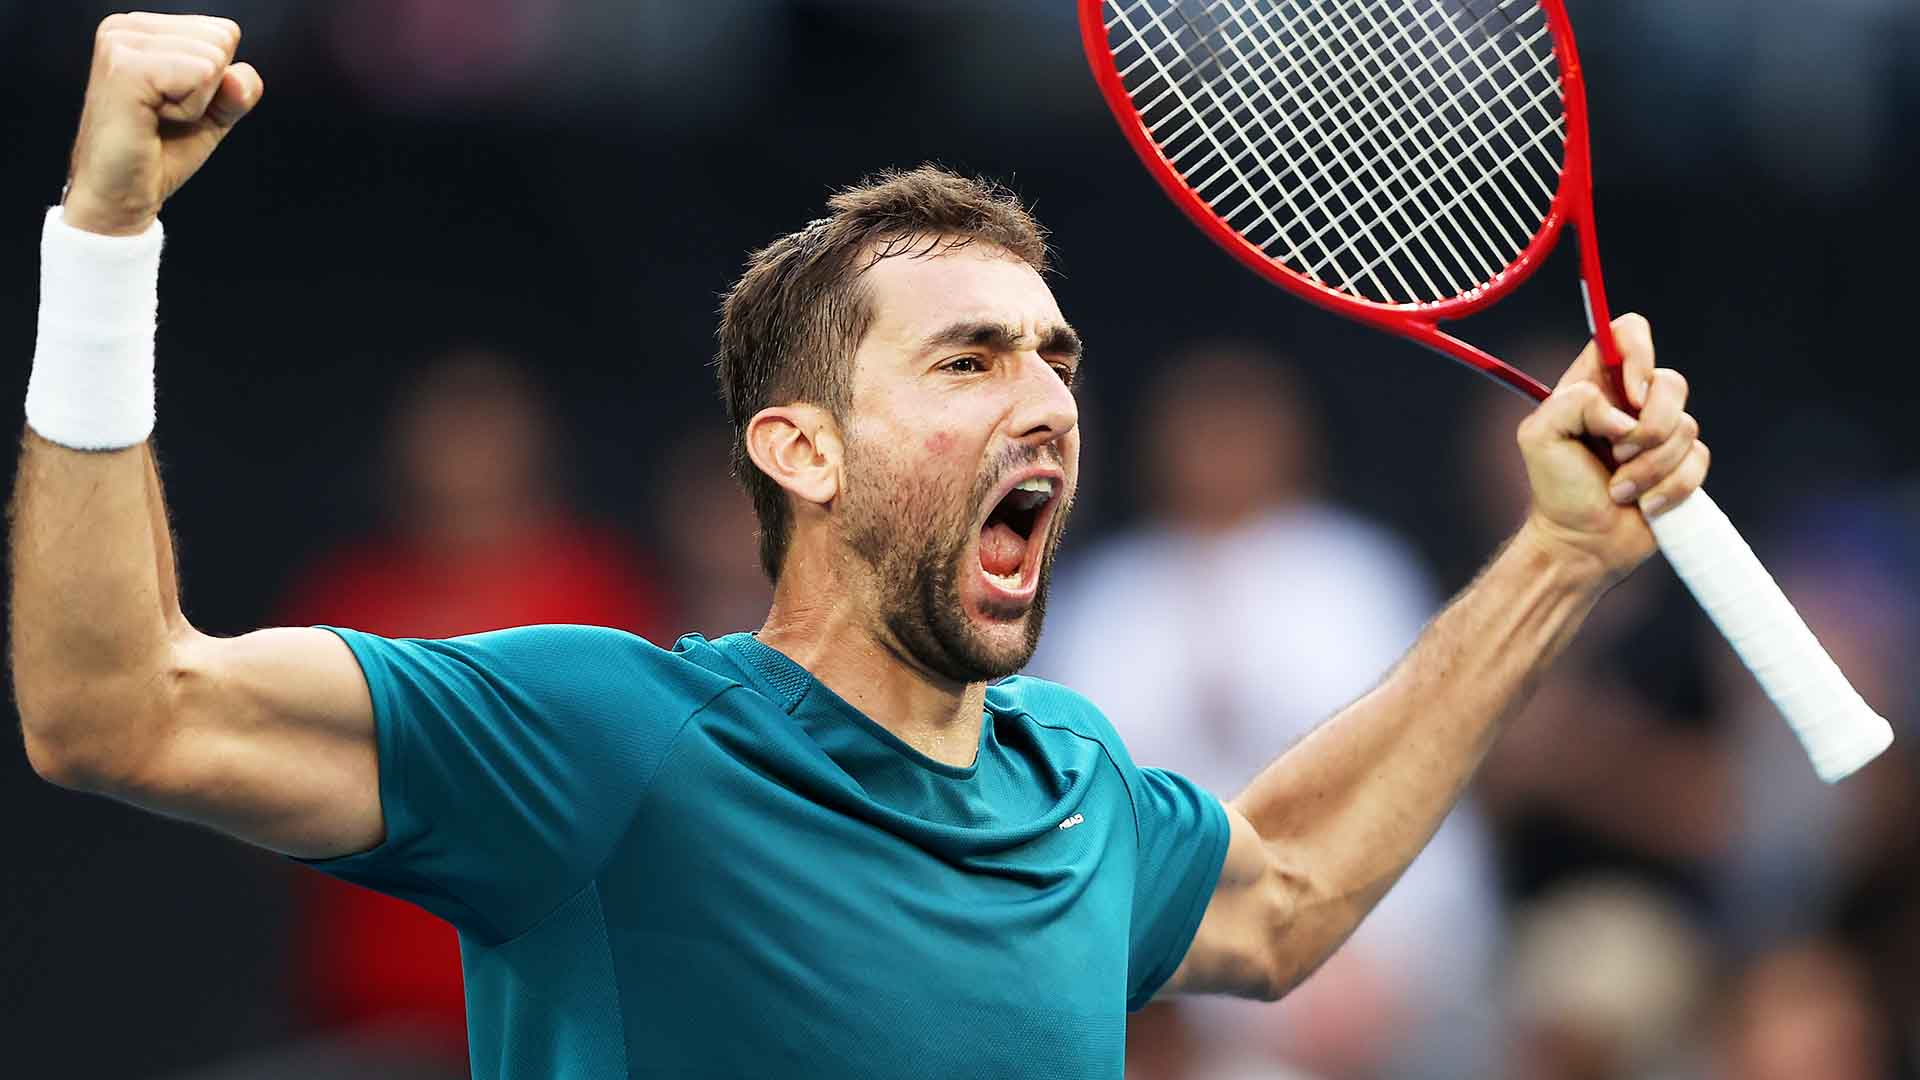 <a href='https://www.atptour.com/en/players/marin-cilic/c977/overview'>Marin Cilic</a> beats <a href='https://www.atptour.com/en/players/roberto-bautista-agut/bd06/overview'>Roberto Bautista Agut</a> in five sets at the <a href='https://www.atptour.com/en/tournaments/australian-open/580/overview'>Australian Open</a> on Friday.